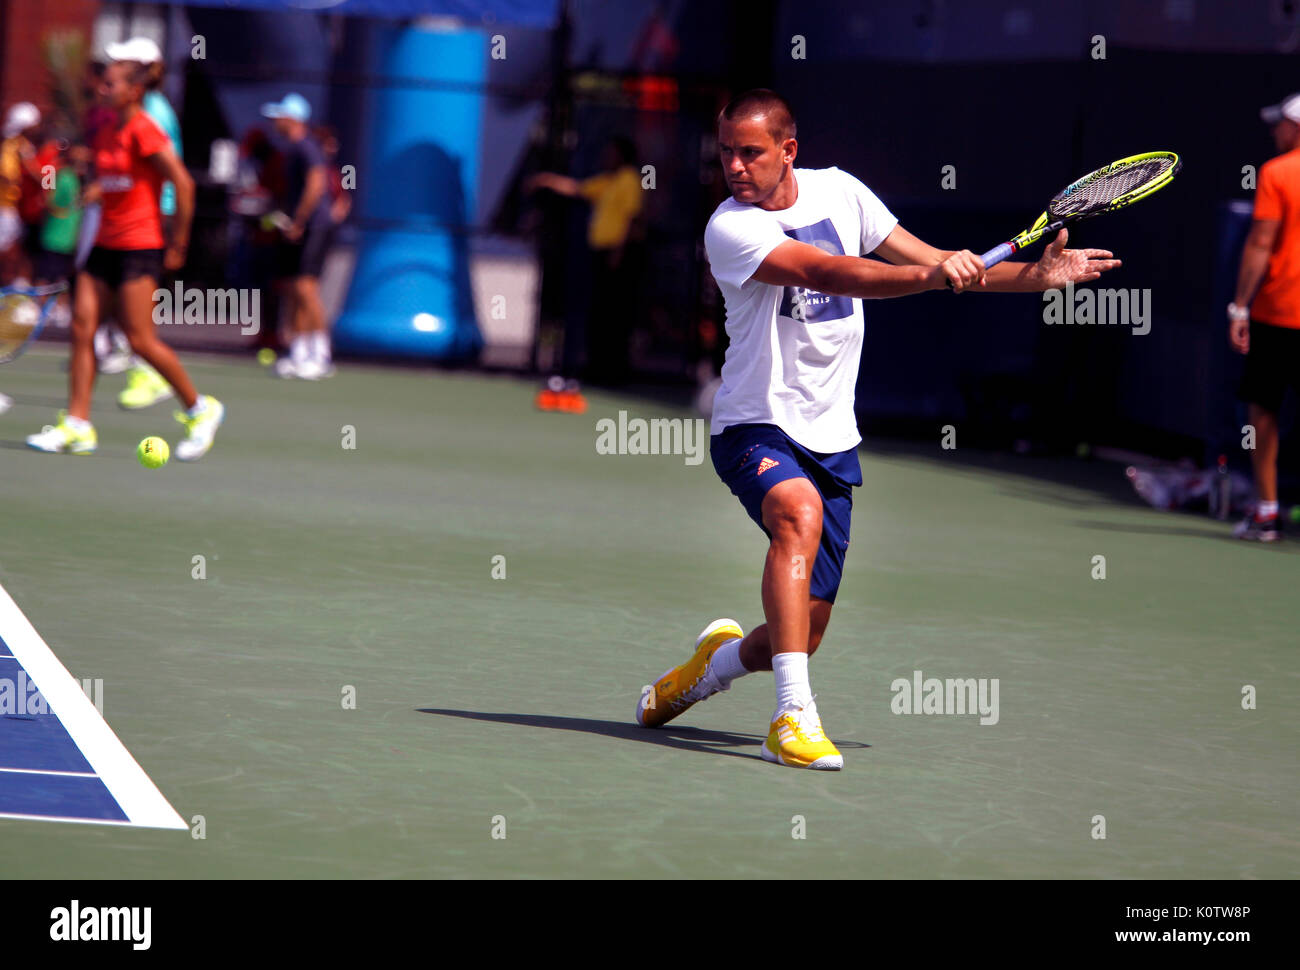 New York, United States. 23rd Aug, 2017. US Open Tennis: New York, 23 August, 2017 -Russia's Mikhail Youzhny practicing at the National Tennis Center in Flushing Meadows, New York in preparation for the US Open which begins next Monday, August 28th Credit: Adam Stoltman/Alamy Live News - Stock Image